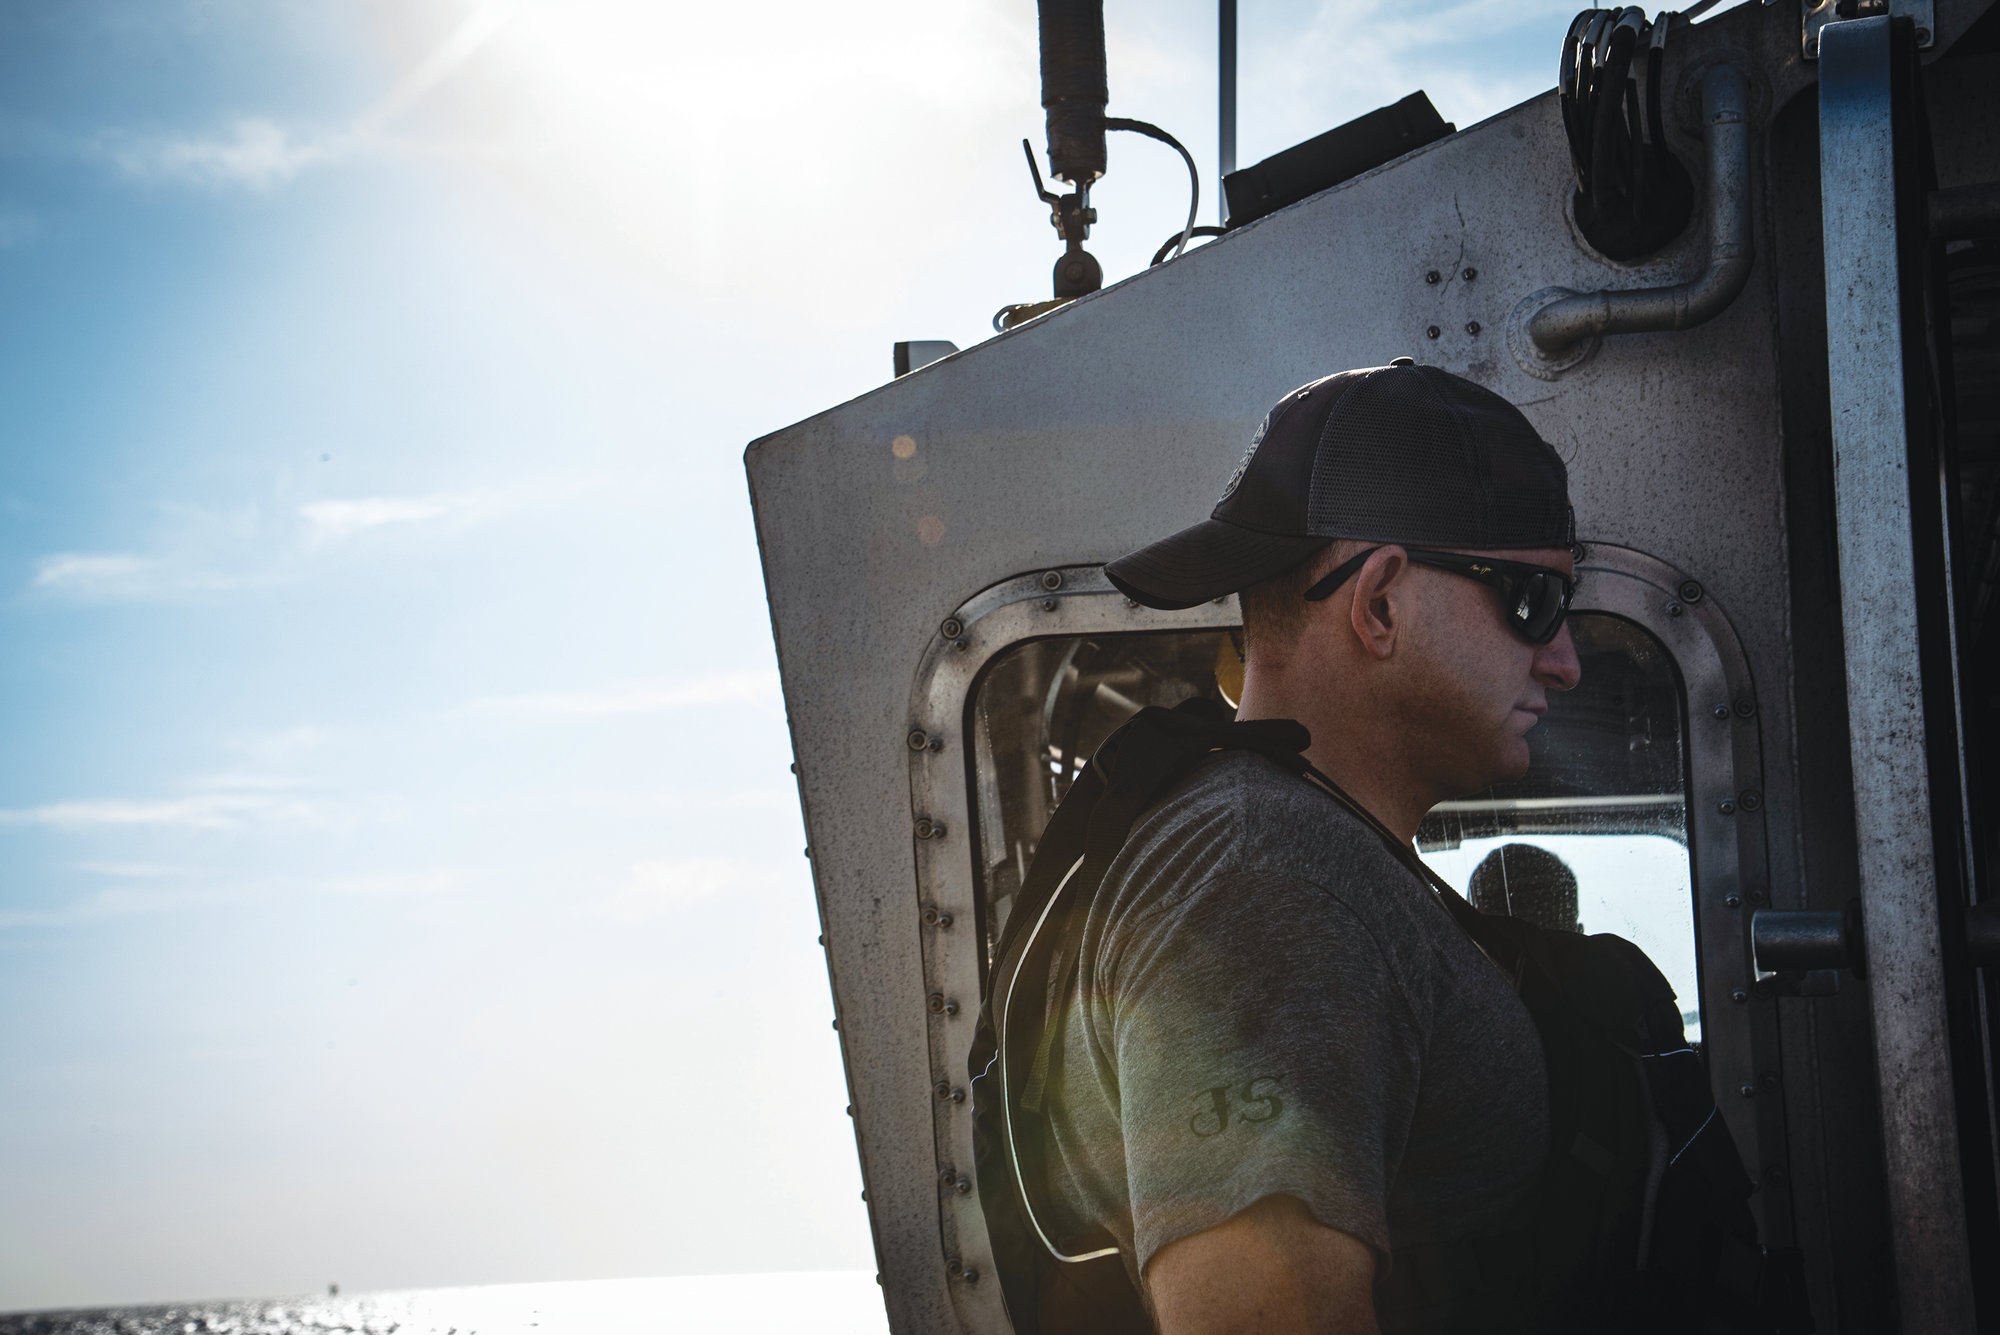 U.S. Air Force Tech. Sgt. David Jones, 20th Operations Support Squadron survival, evasion, resistance and escape noncommissioned officer in charge, prepares to participate in a joint training exercise with the U.S. Coast Guard off the coast of Tybee Island Coast Guard Station, Georgia, June 21. Jones helped prepare the pilots for what they might experience if they ever found themselves in this situation in the real world.